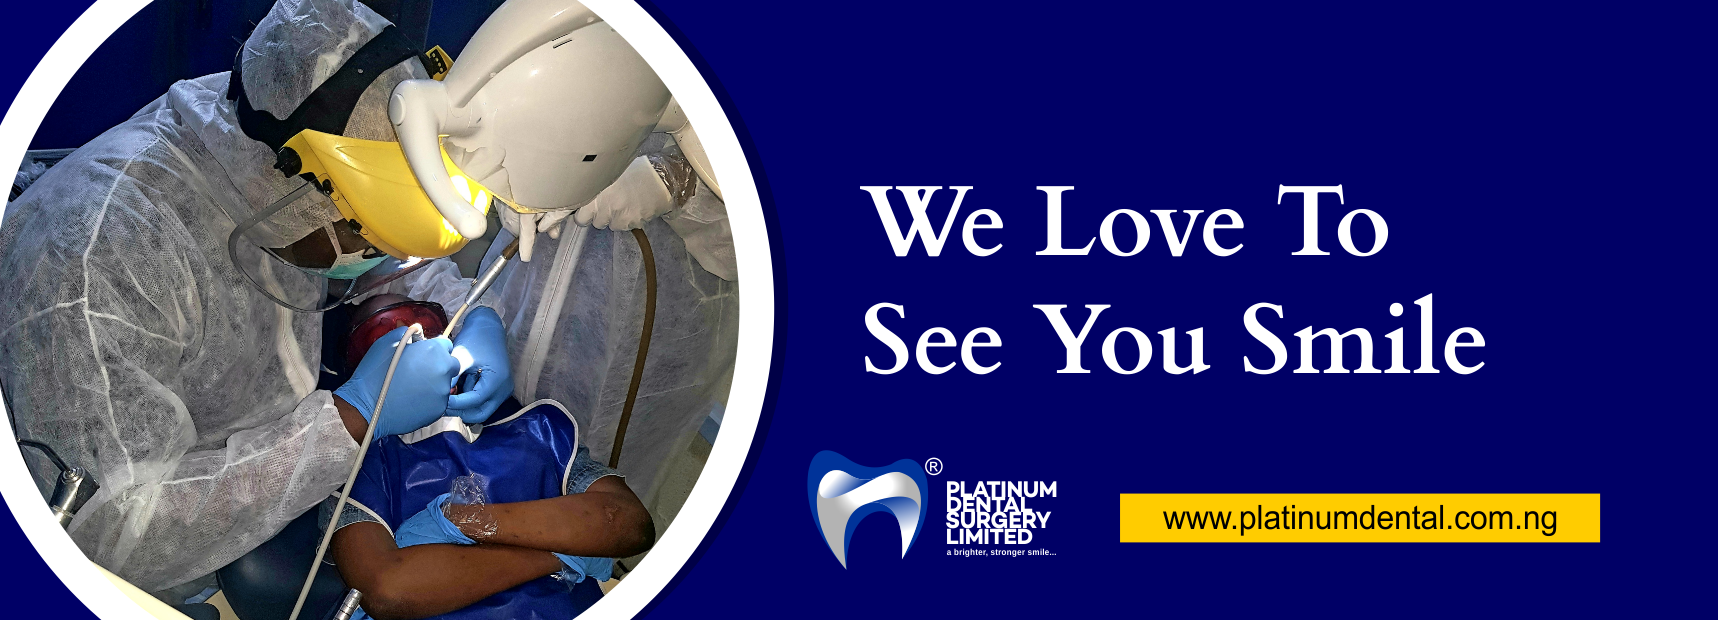 We Love to see You smile Platinum Dental Surgery